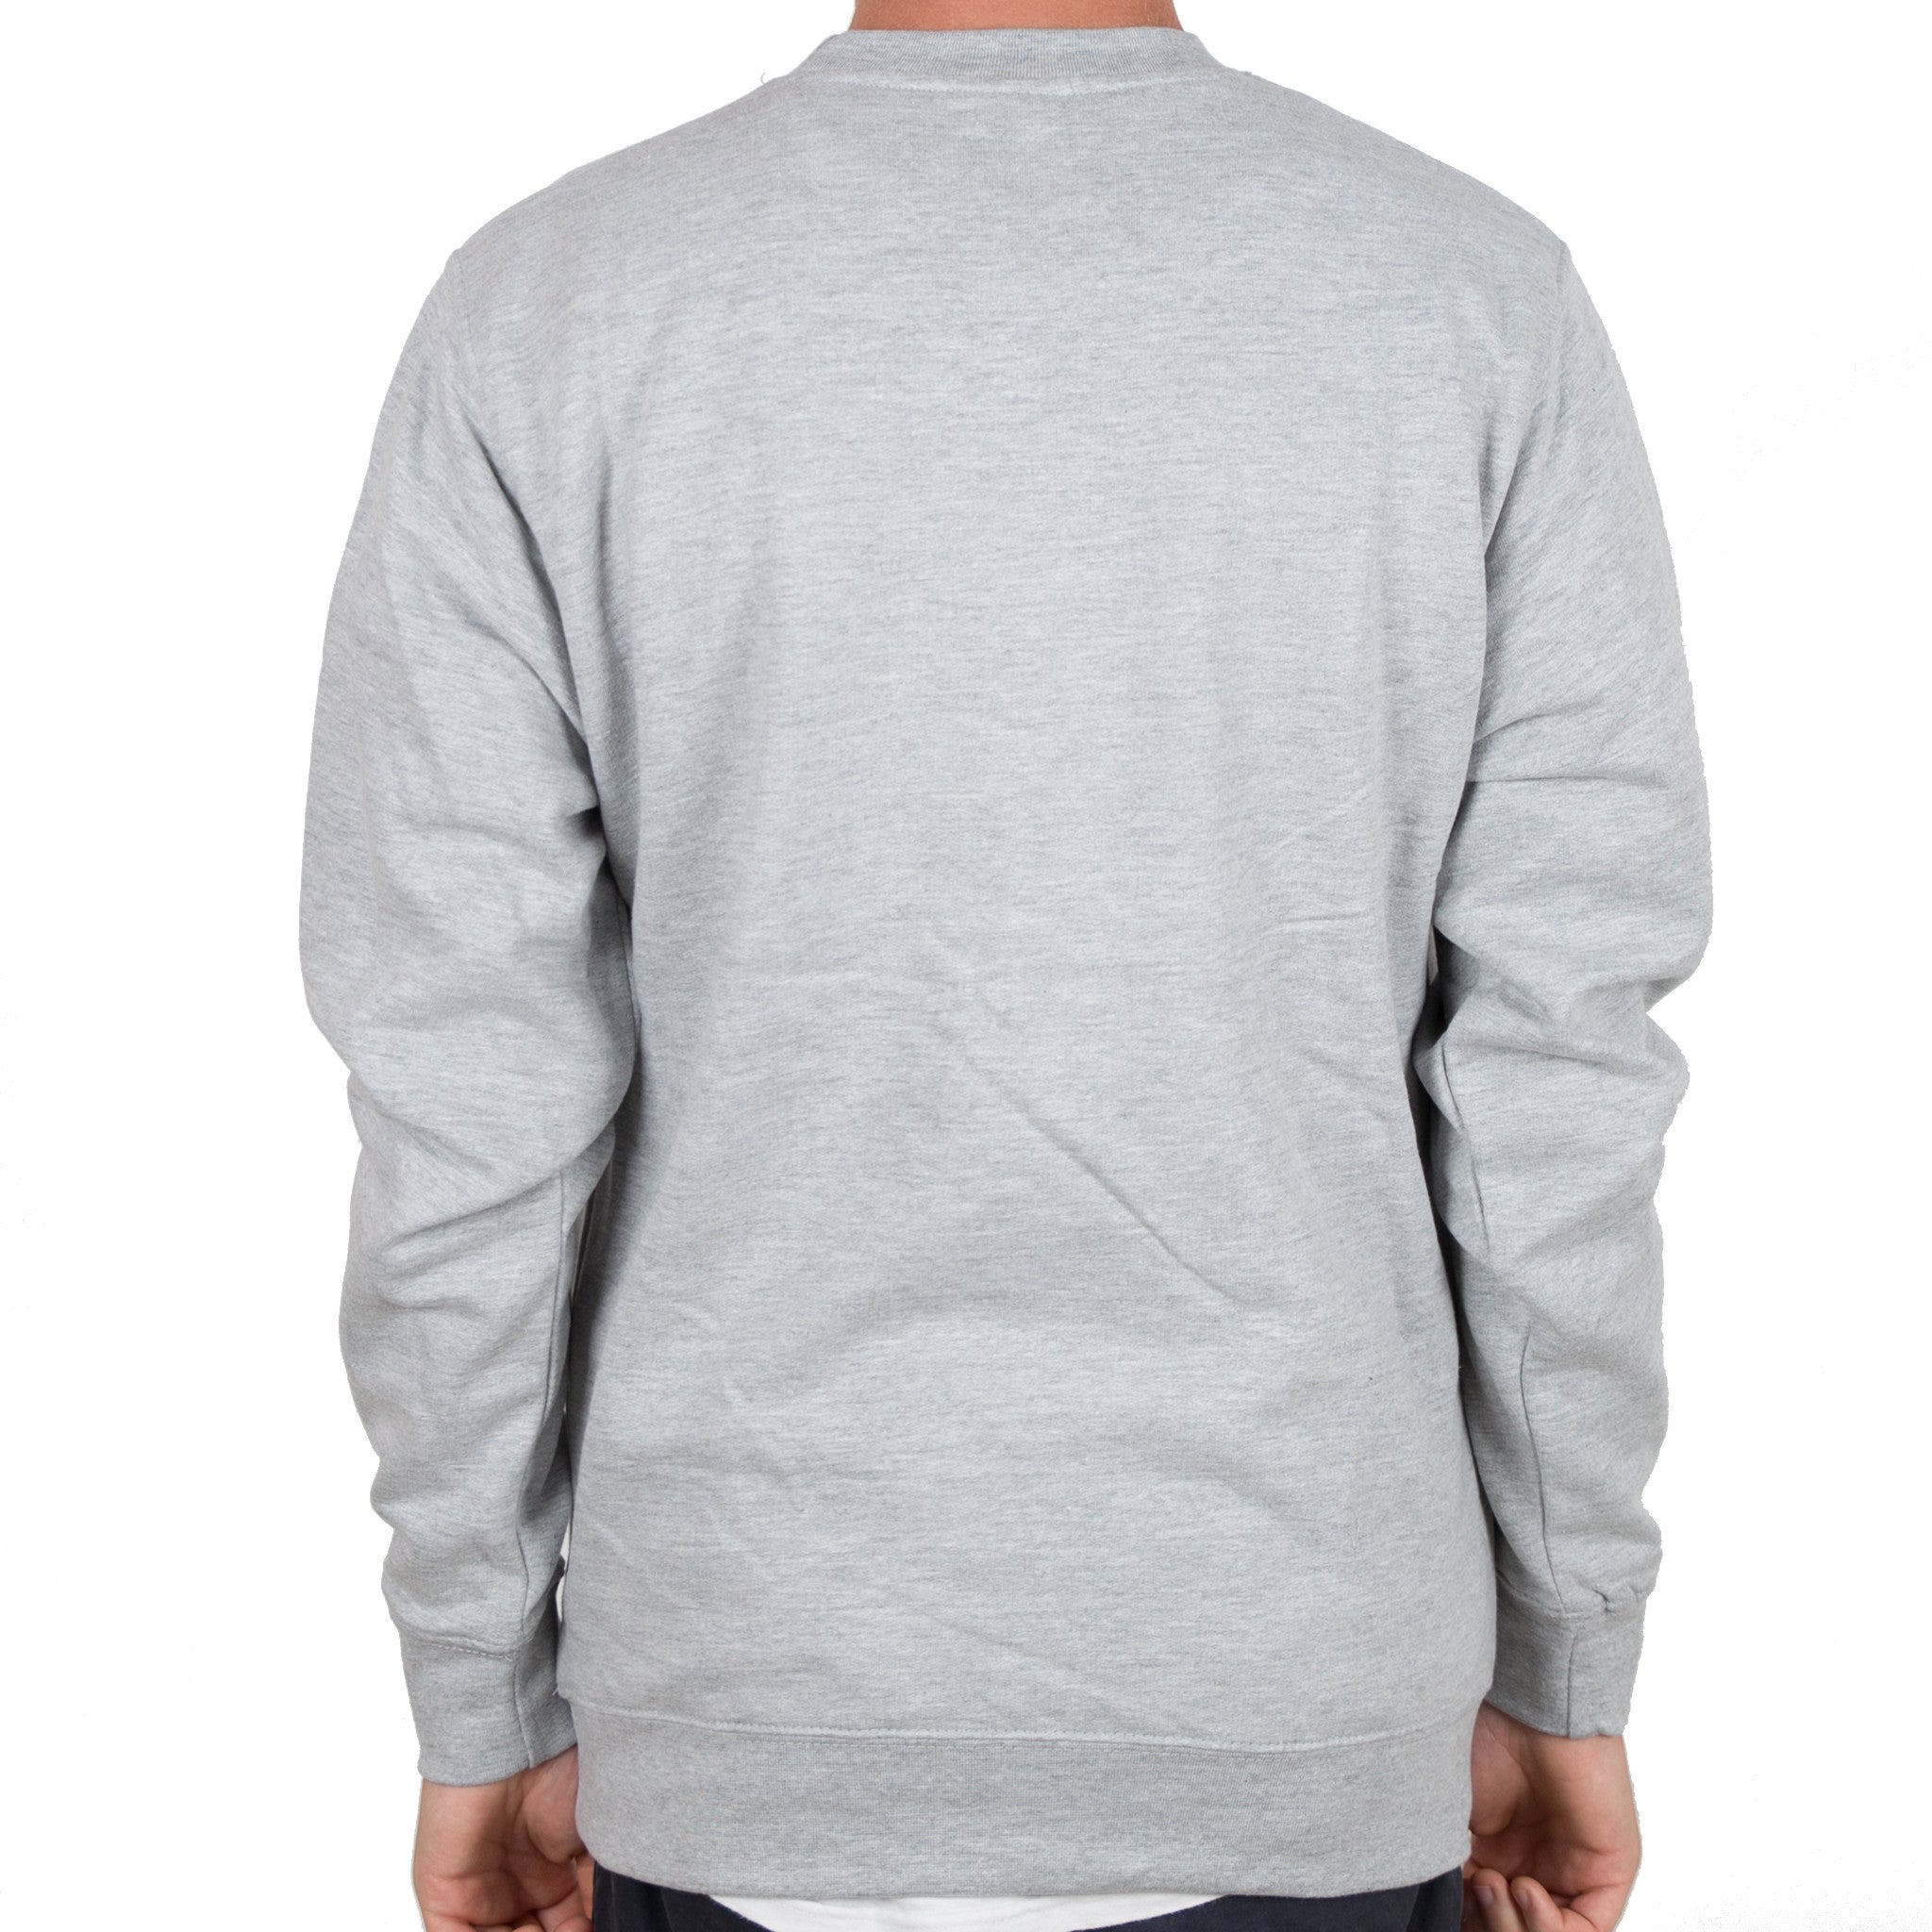 Skate rat grey sweater - Stoked Boardshop  - 2